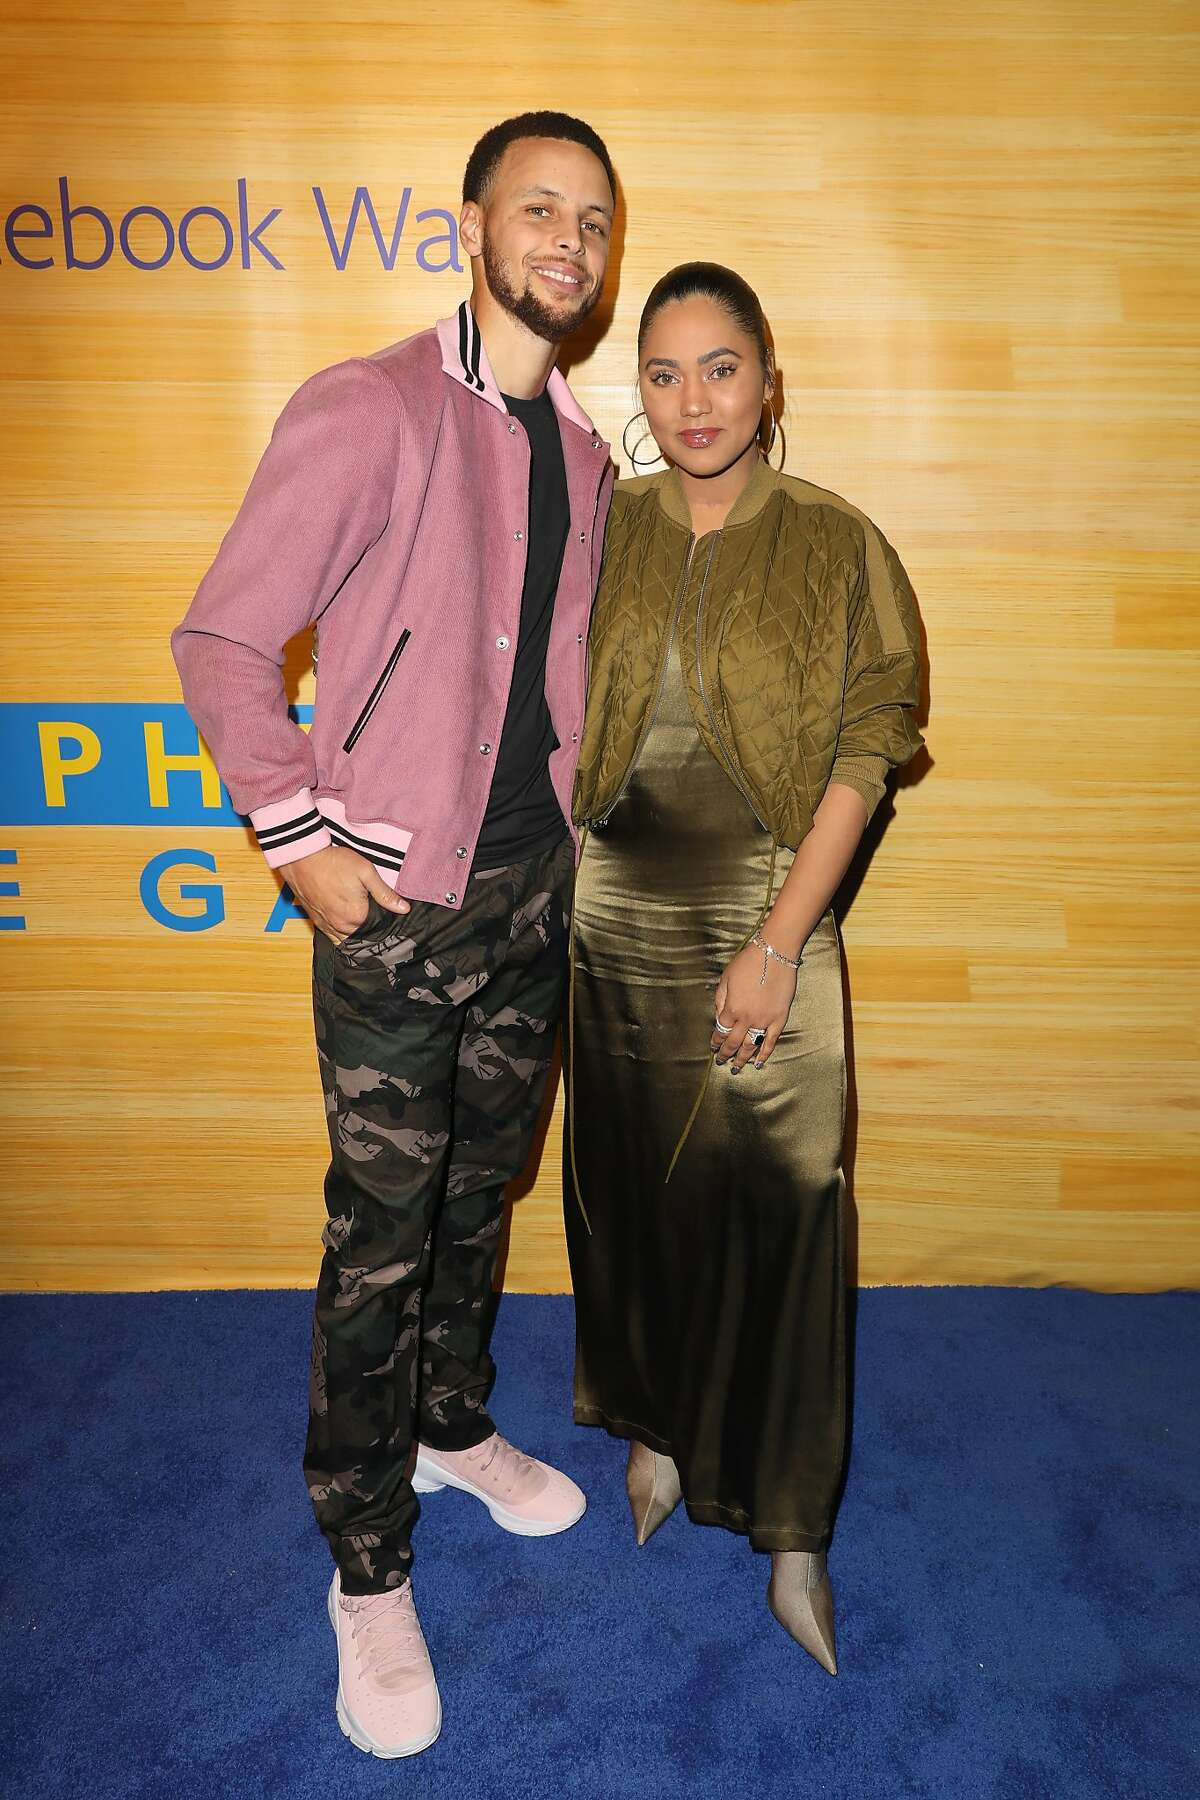 Stephen and Ayesha Curry pose for a photo on the red carpet at 16th Street Station on April 1, 2019 in Oakland, California.